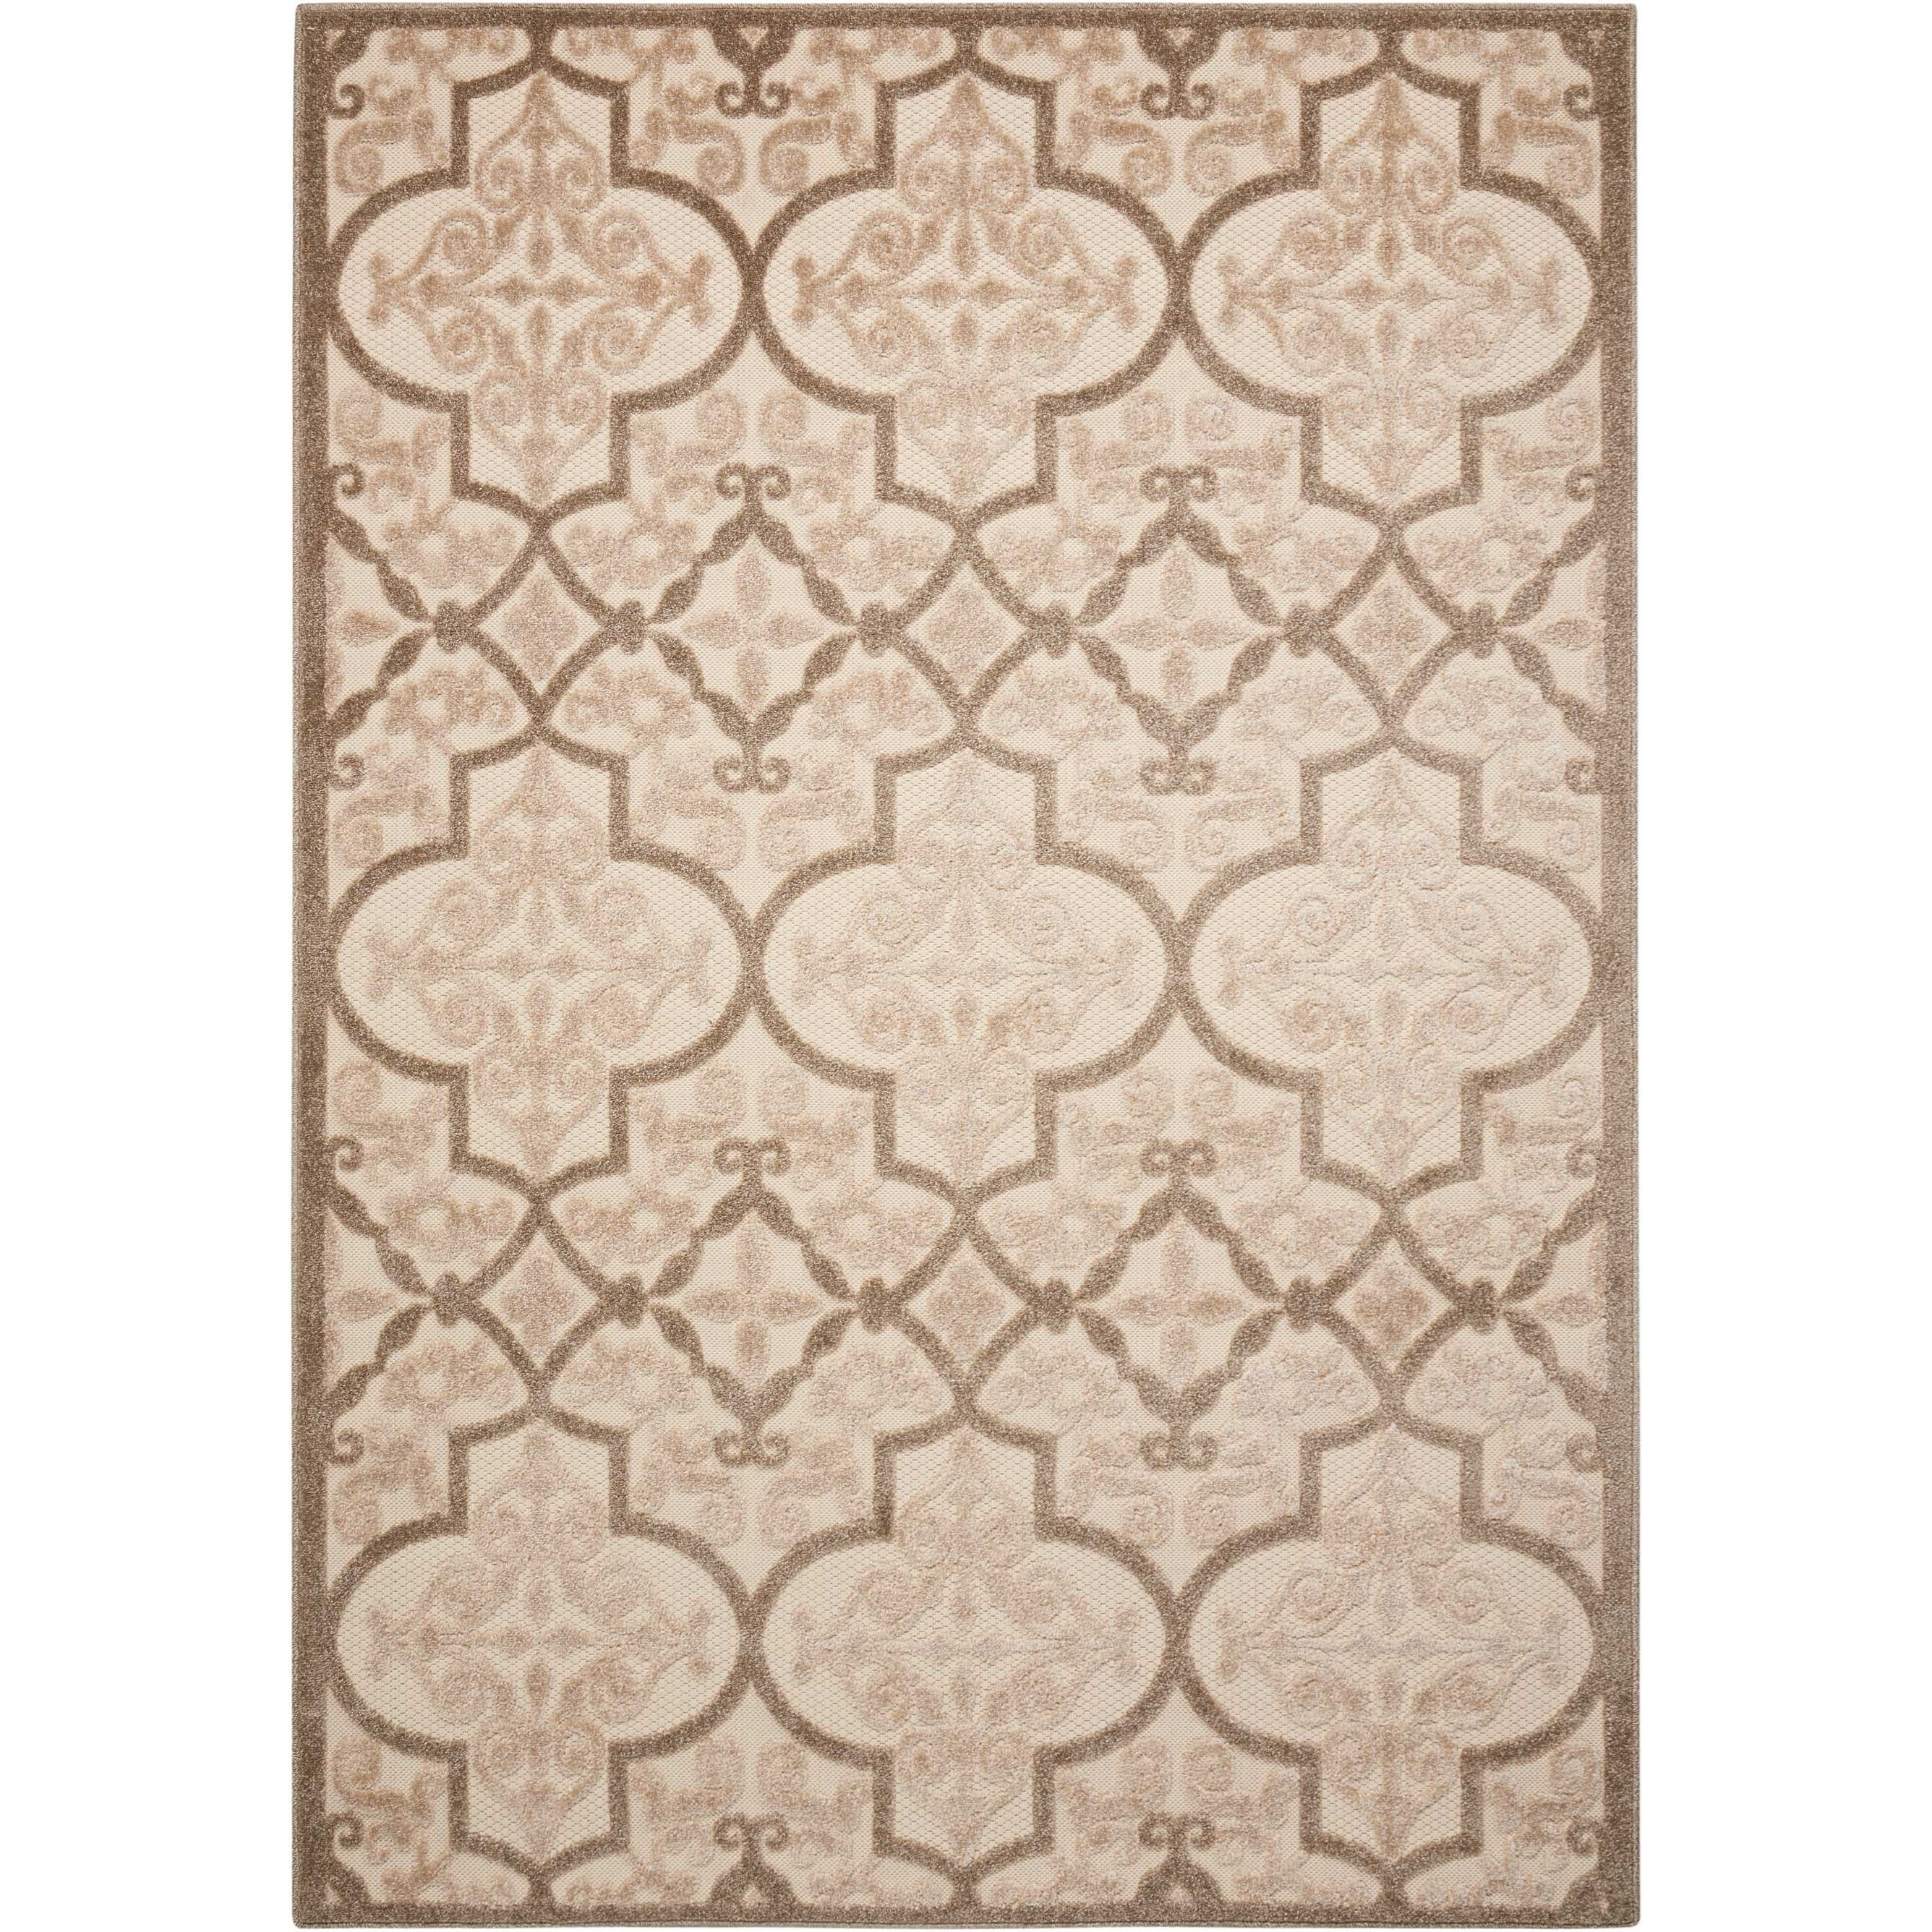 """Aloha 3'6"""" X 5'6"""" Cream Rug by Nourison at Home Collections Furniture"""